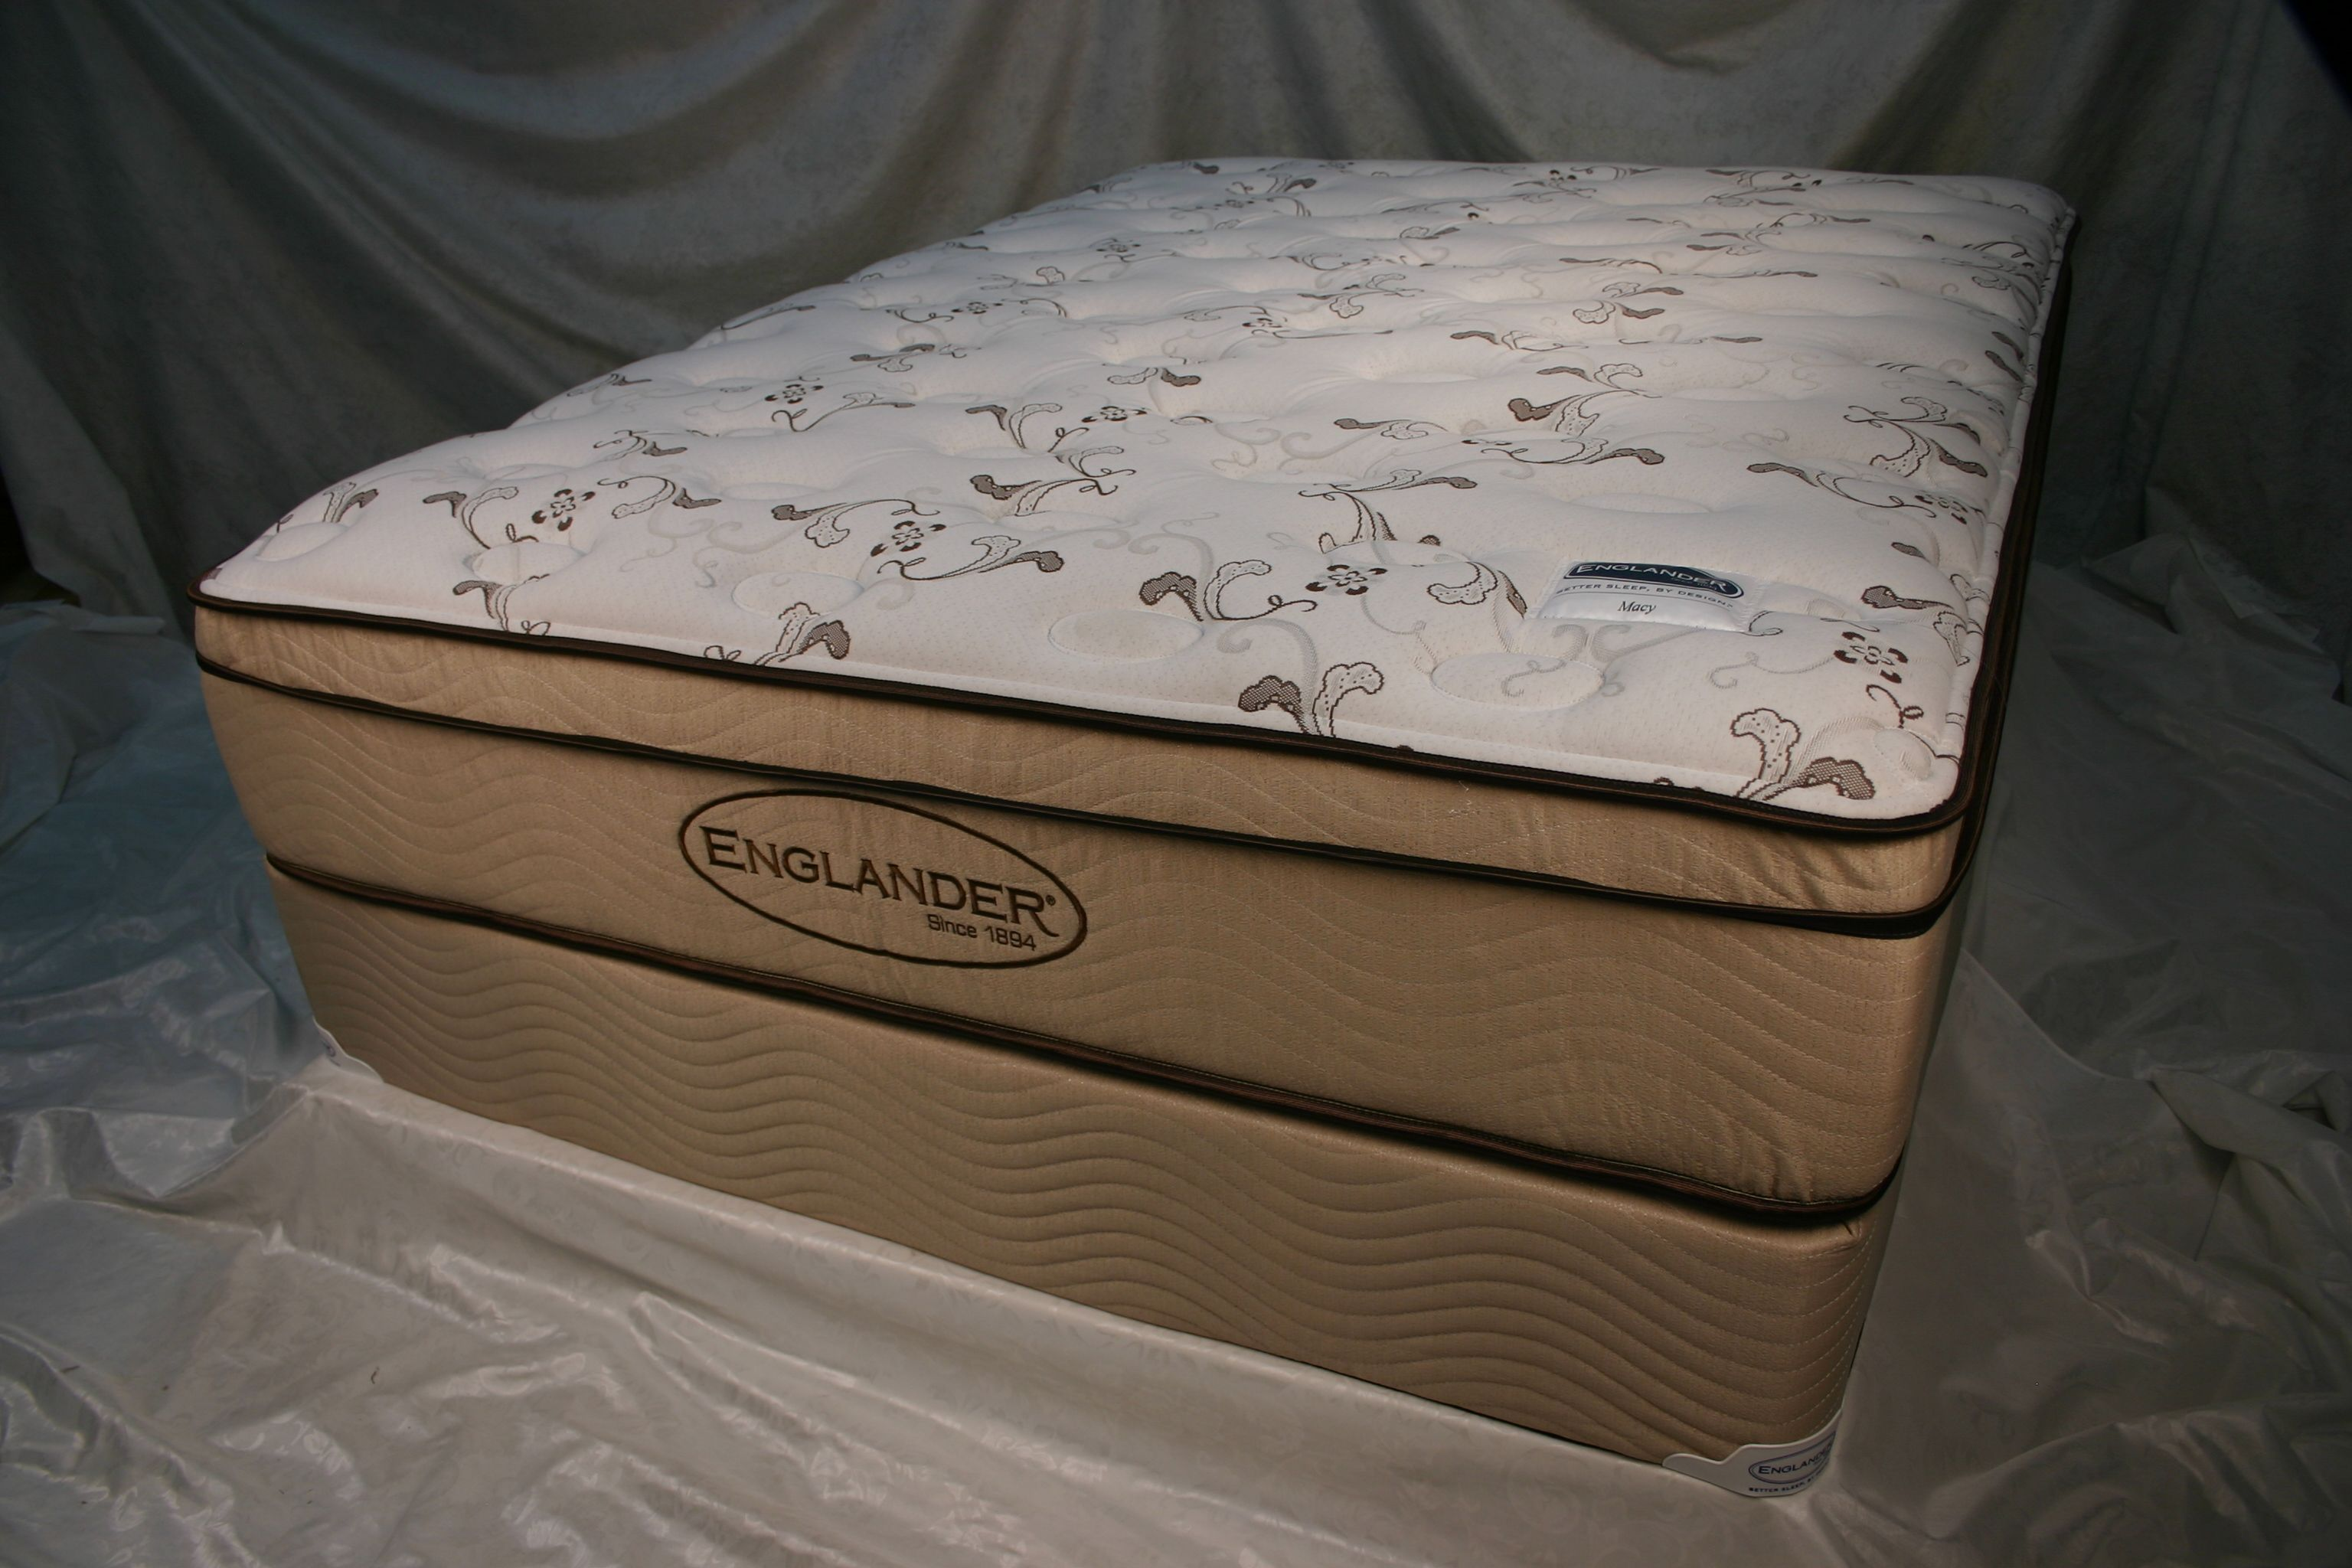 mepillow sale mattress mewtop top images pillow sales pillowtop firm twin design king full smart on size near fl of gainesville salesking